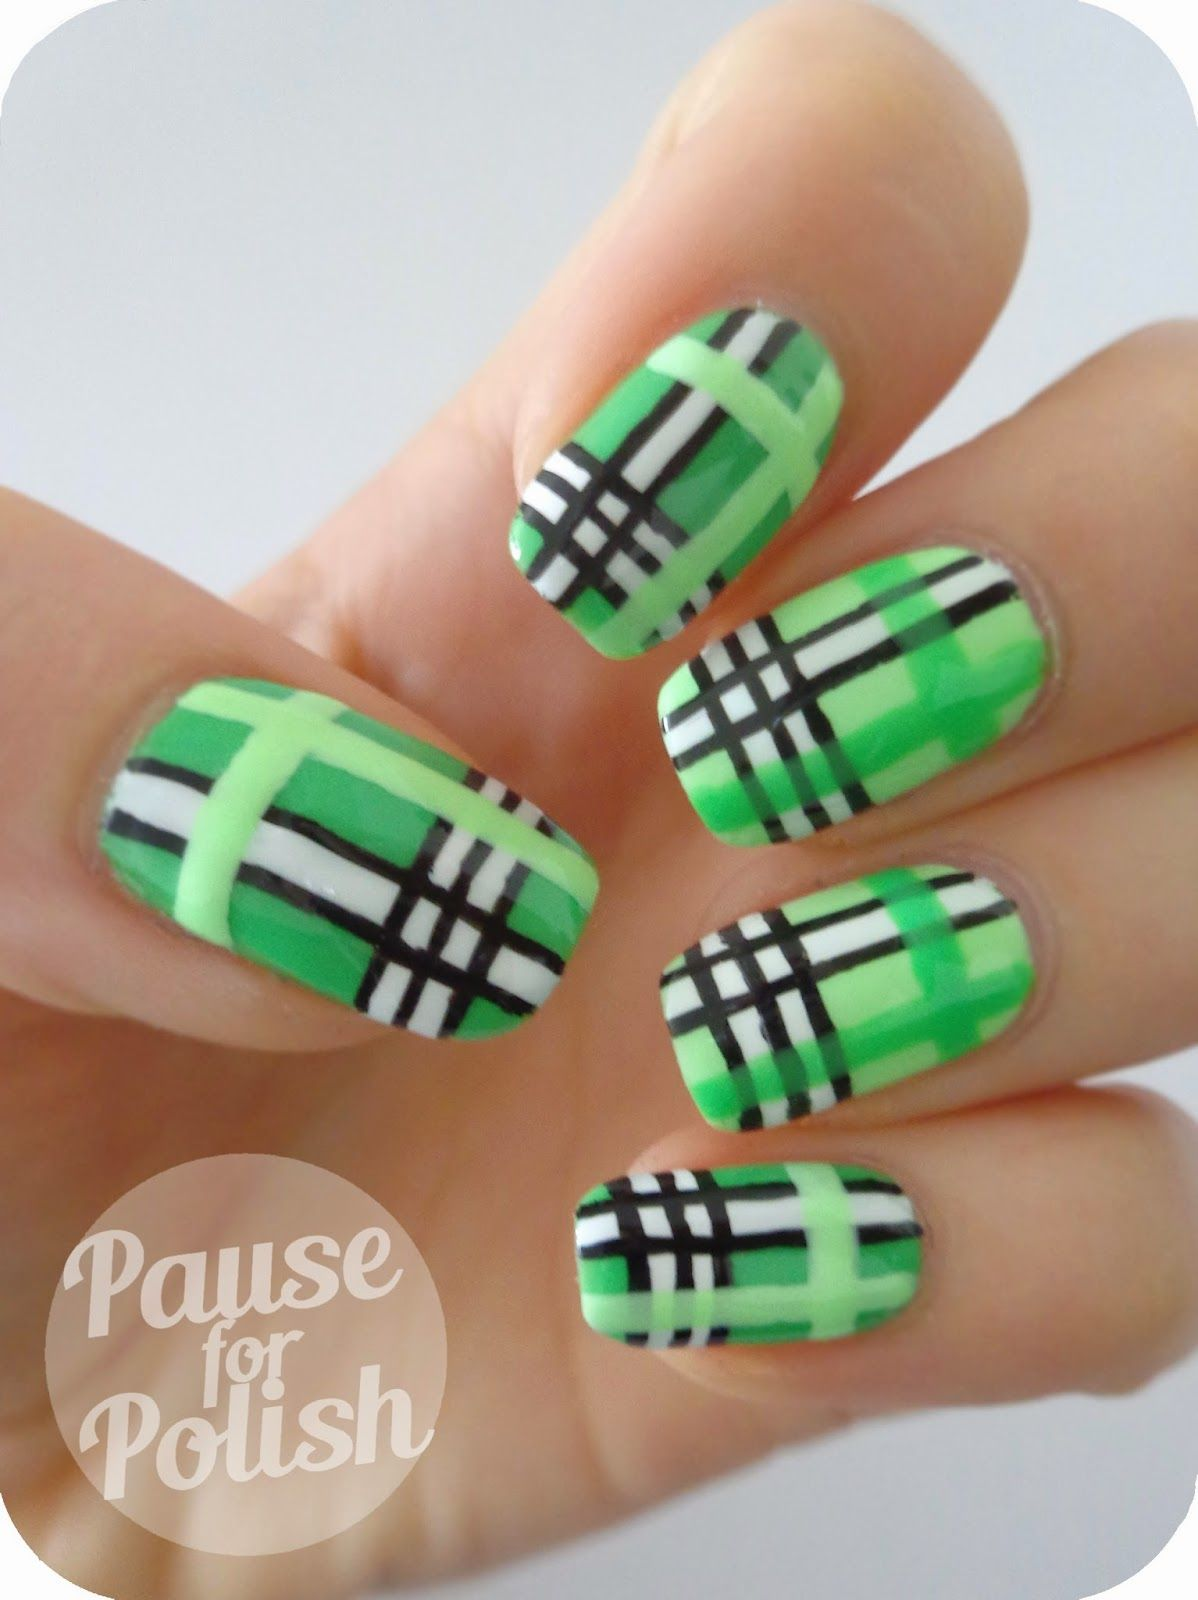 Pause For Polish: Claire\'s Accessories Neon | Plaid Nail Art | St ...